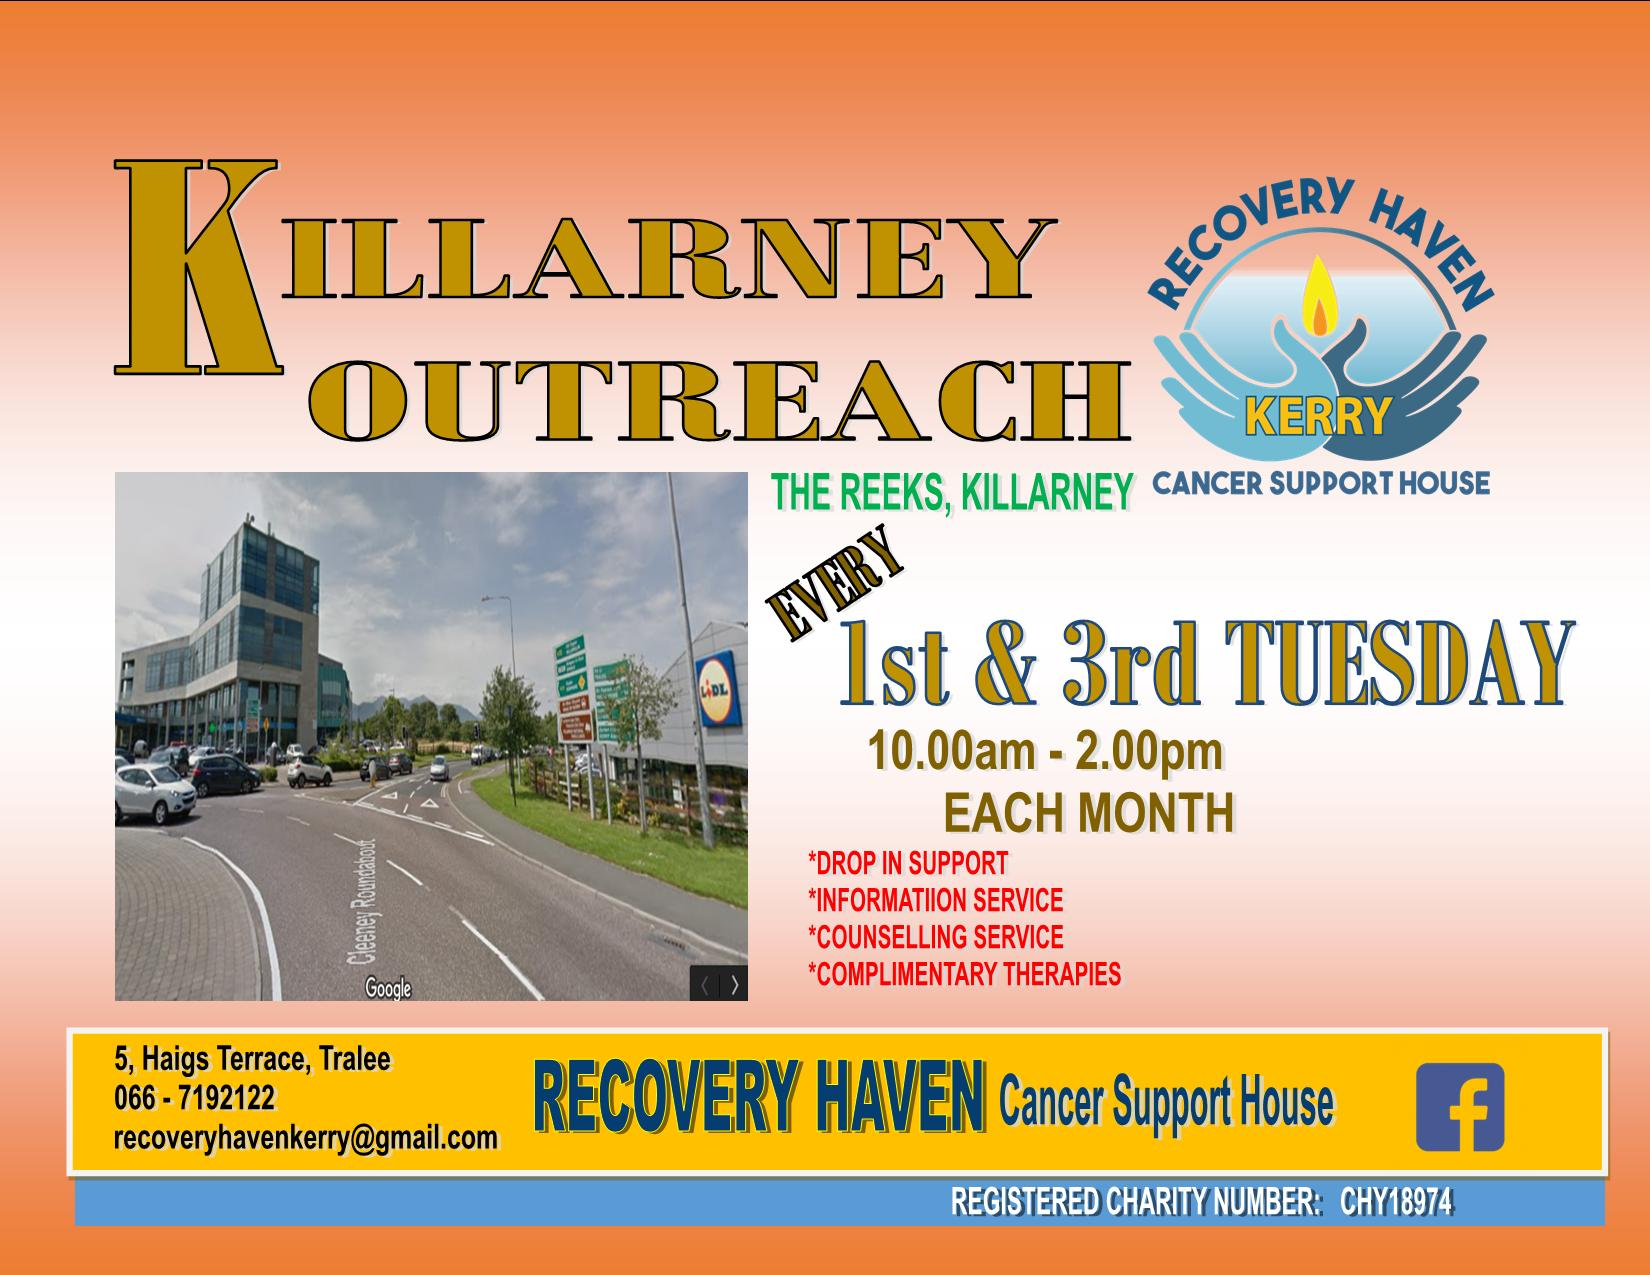 Join us at killarney outreach